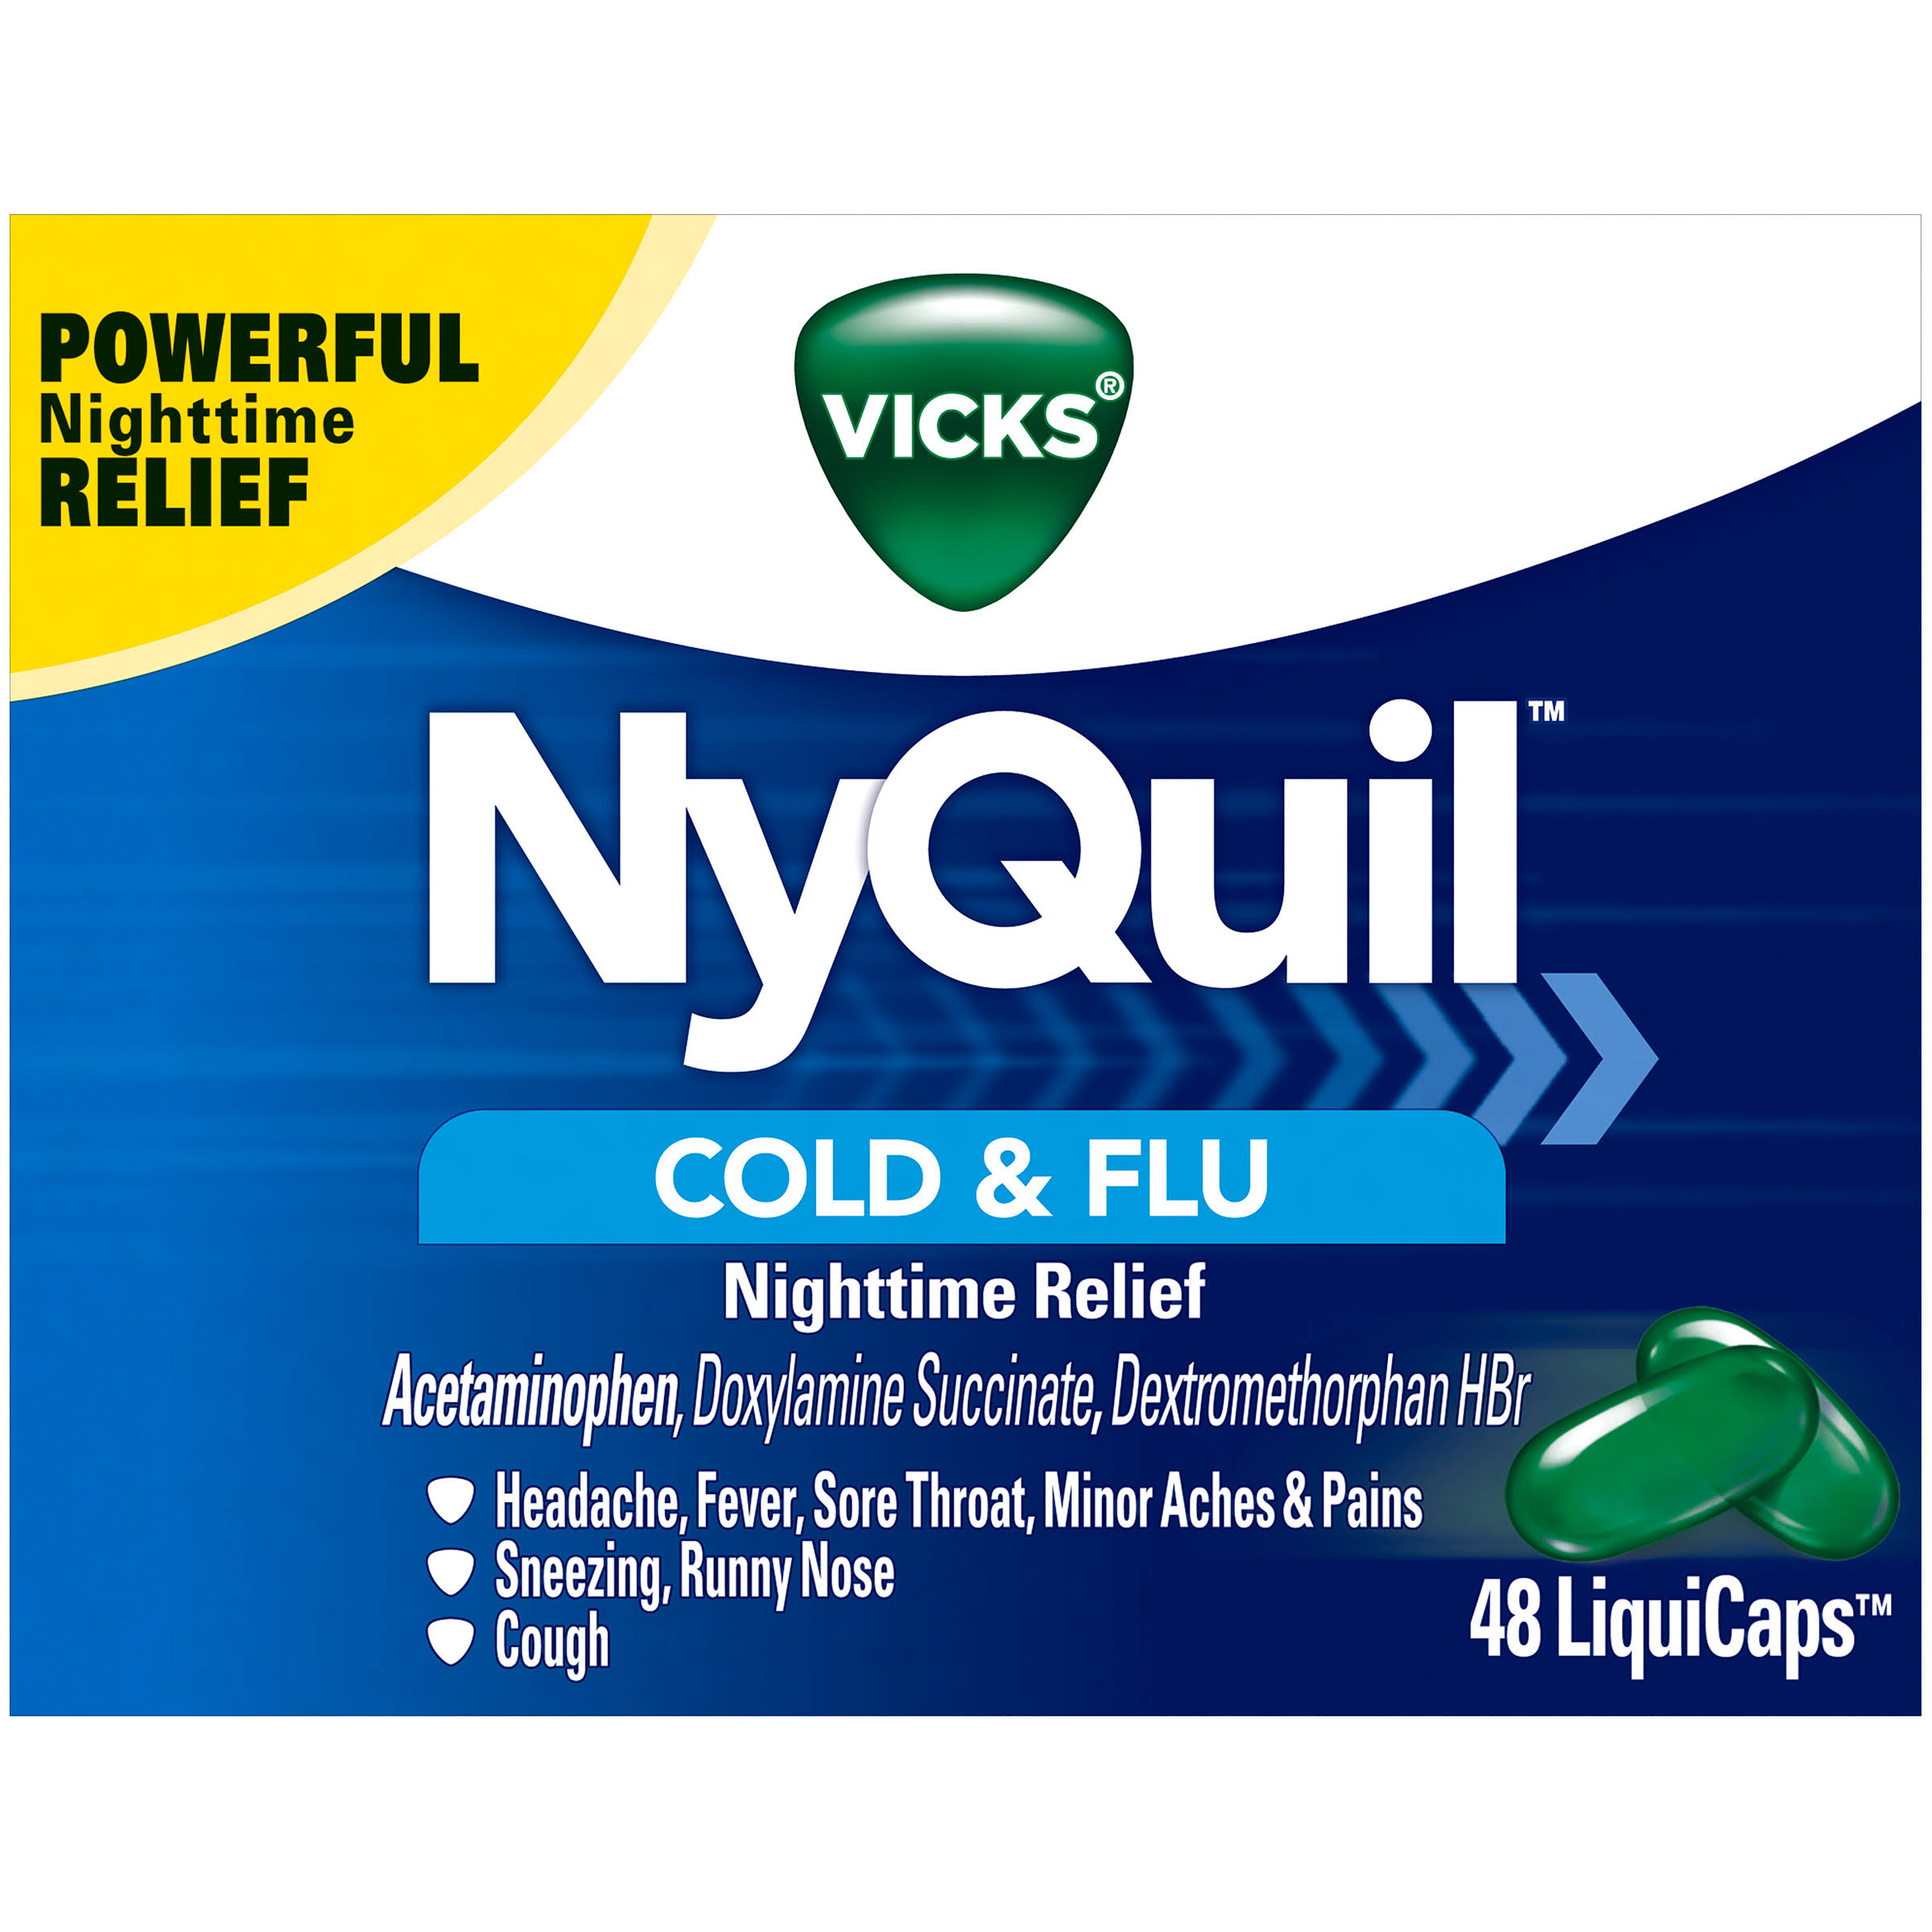 Vicks NyQuil Cold and Flu Nighttime Relief LiquiCaps - 48pk